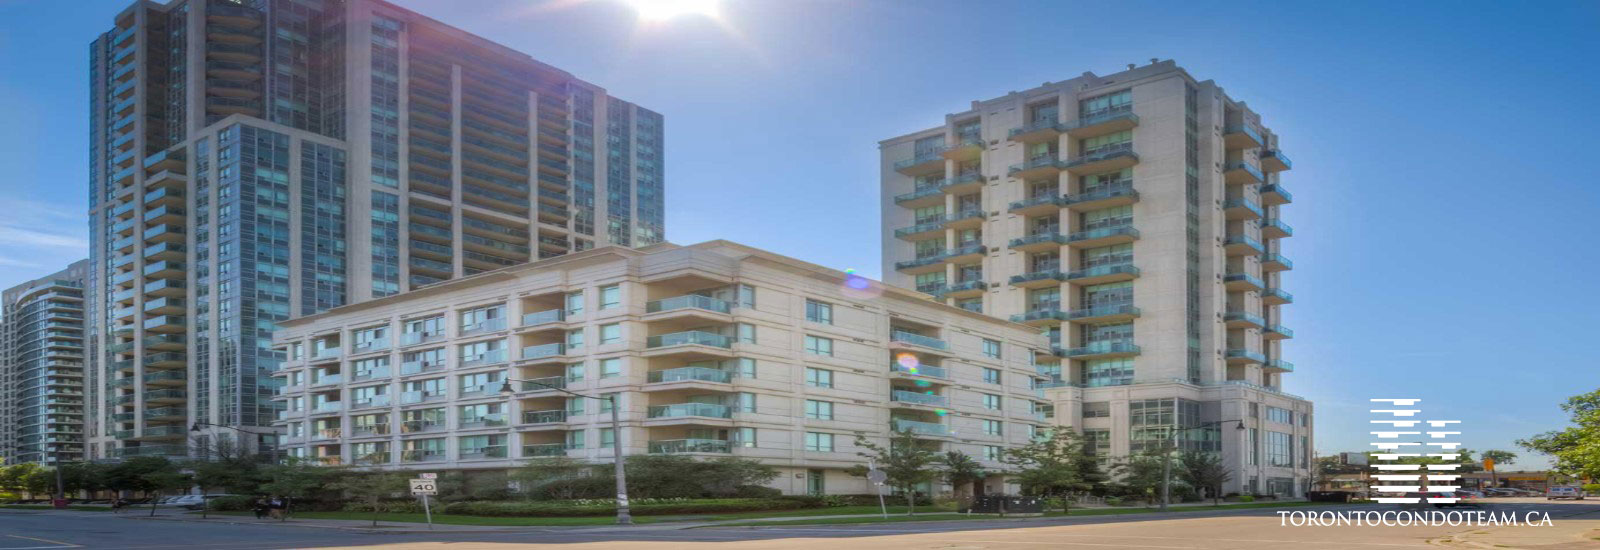 16-18 Harrison Garden Blvd Condos For Sale